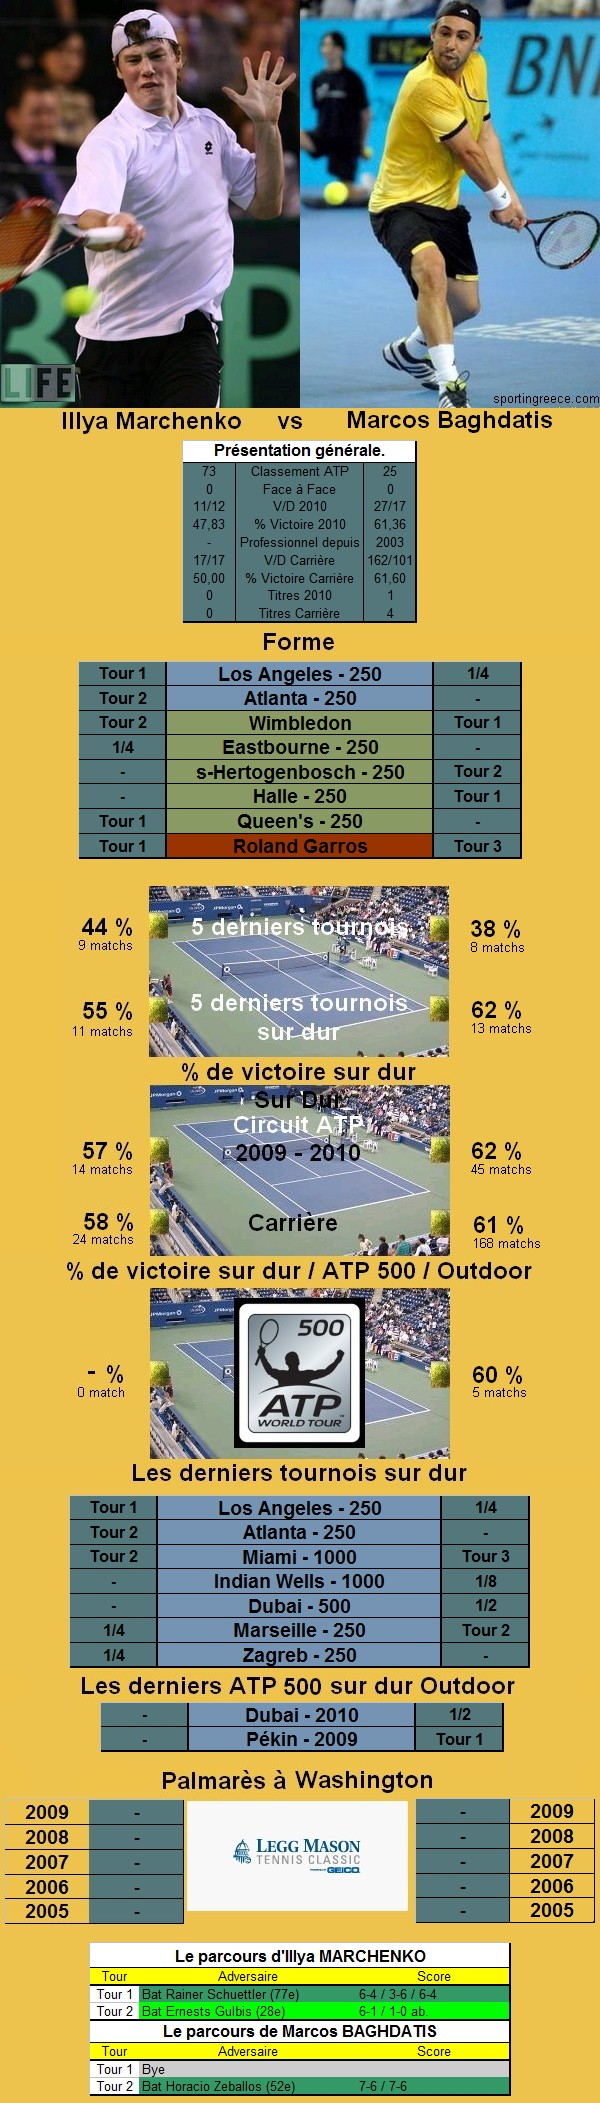 Statistiques tennis de Marchenko contre Baghdatis à Washington